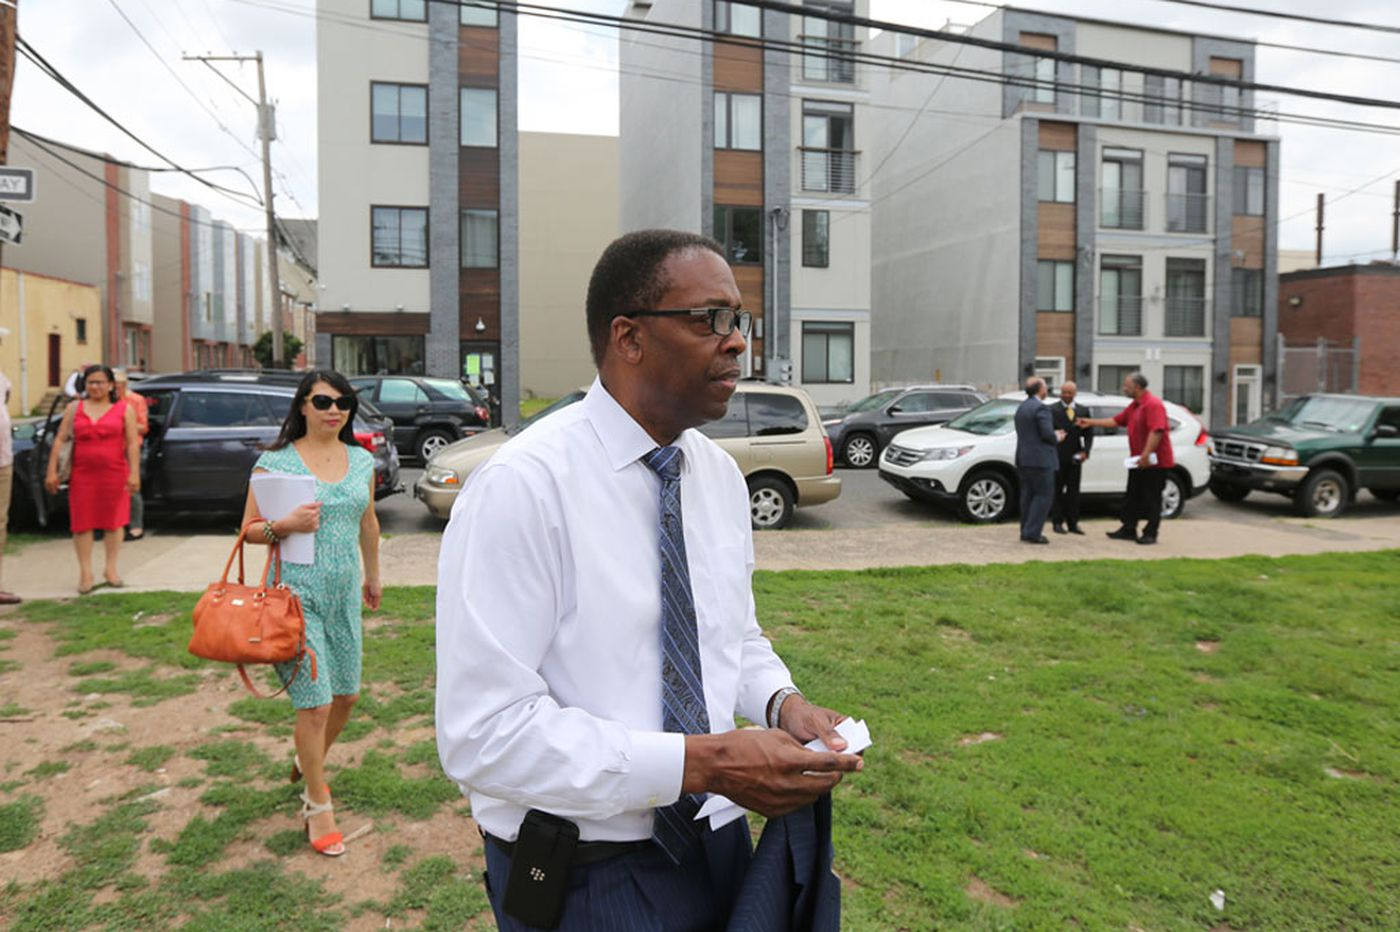 In burgeoning Francisville, a plan for 'workforce housing'